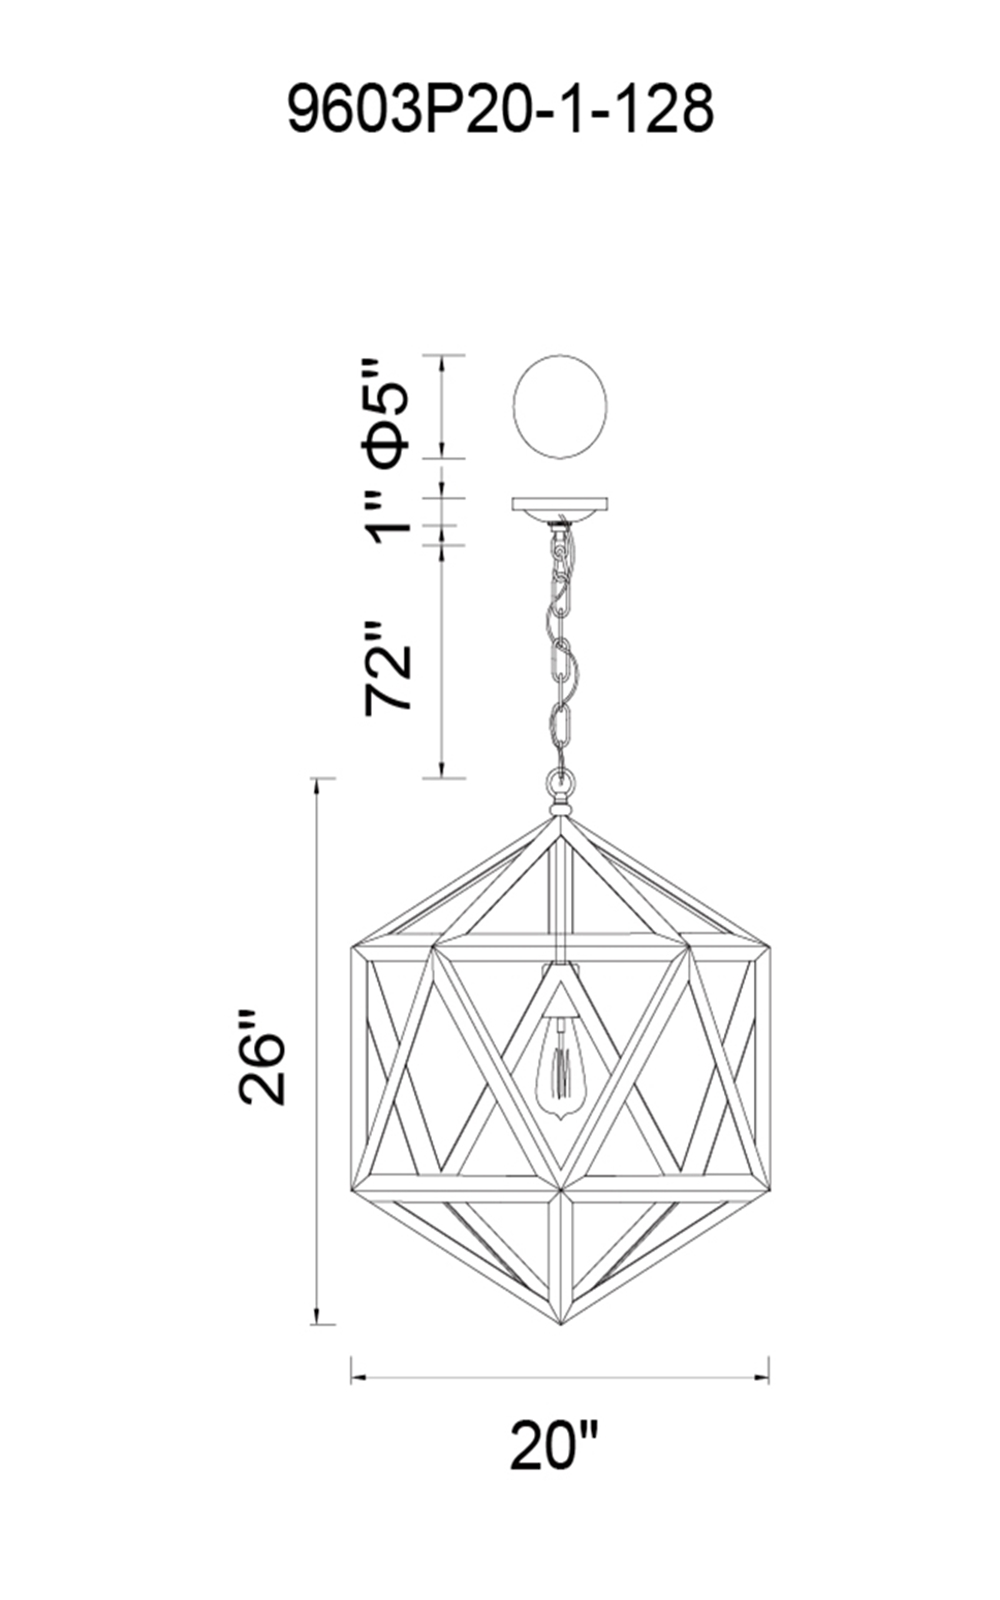 CWI Lighting Dia 1 Light Down Pendant With Antique Copper Model: 9603P20-1-128 Line Drawing